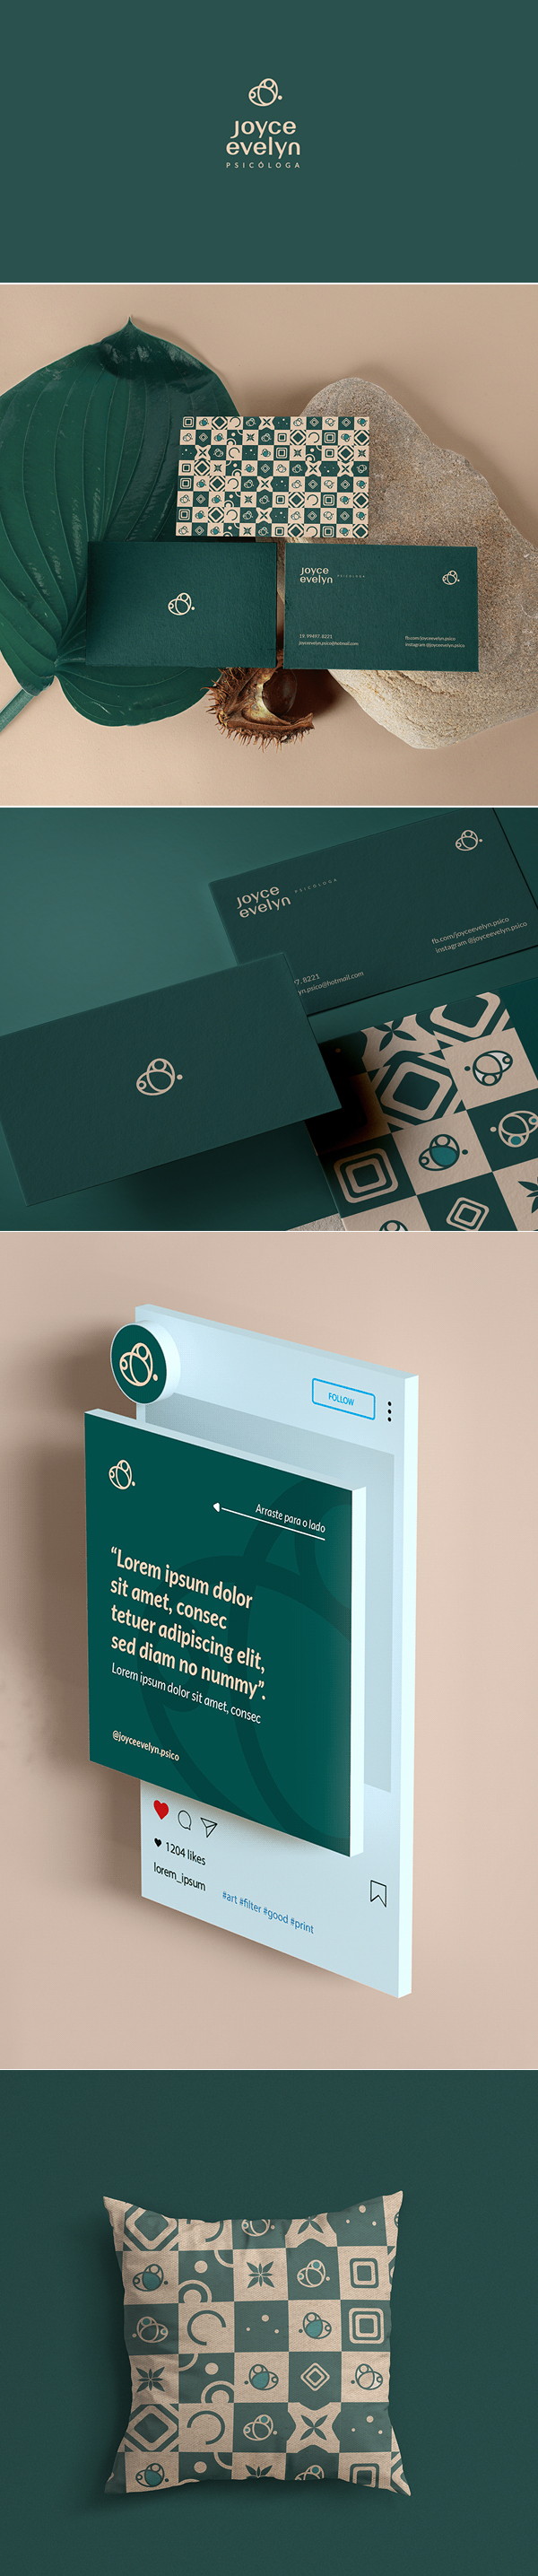 Joyce Evelyn Psychologist Visual Brand by Smoke Creative